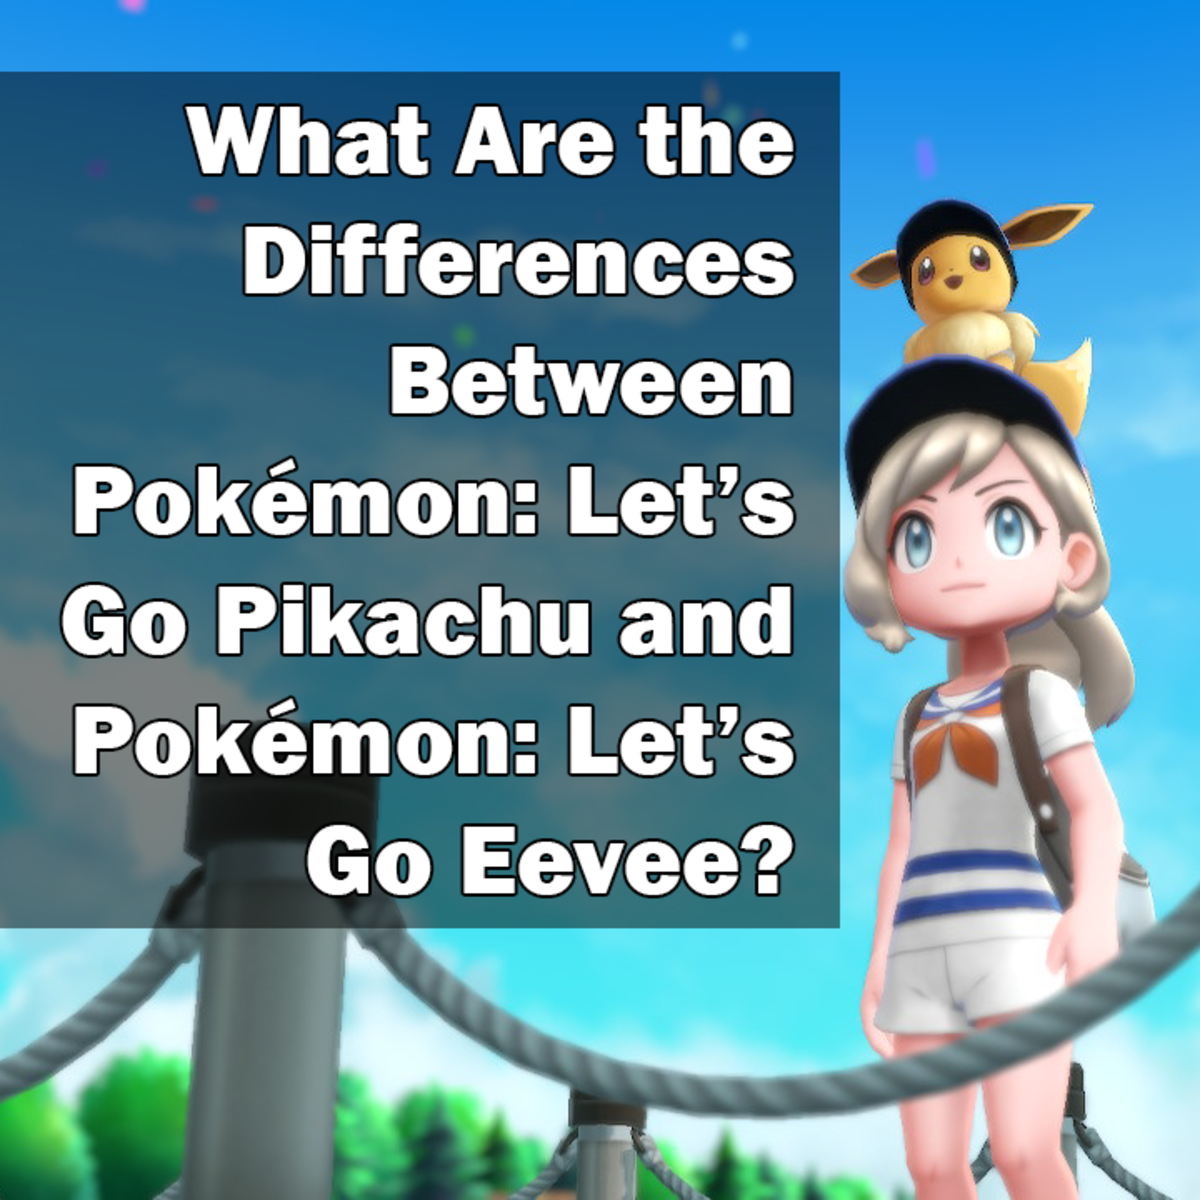 What Are the Differences Between